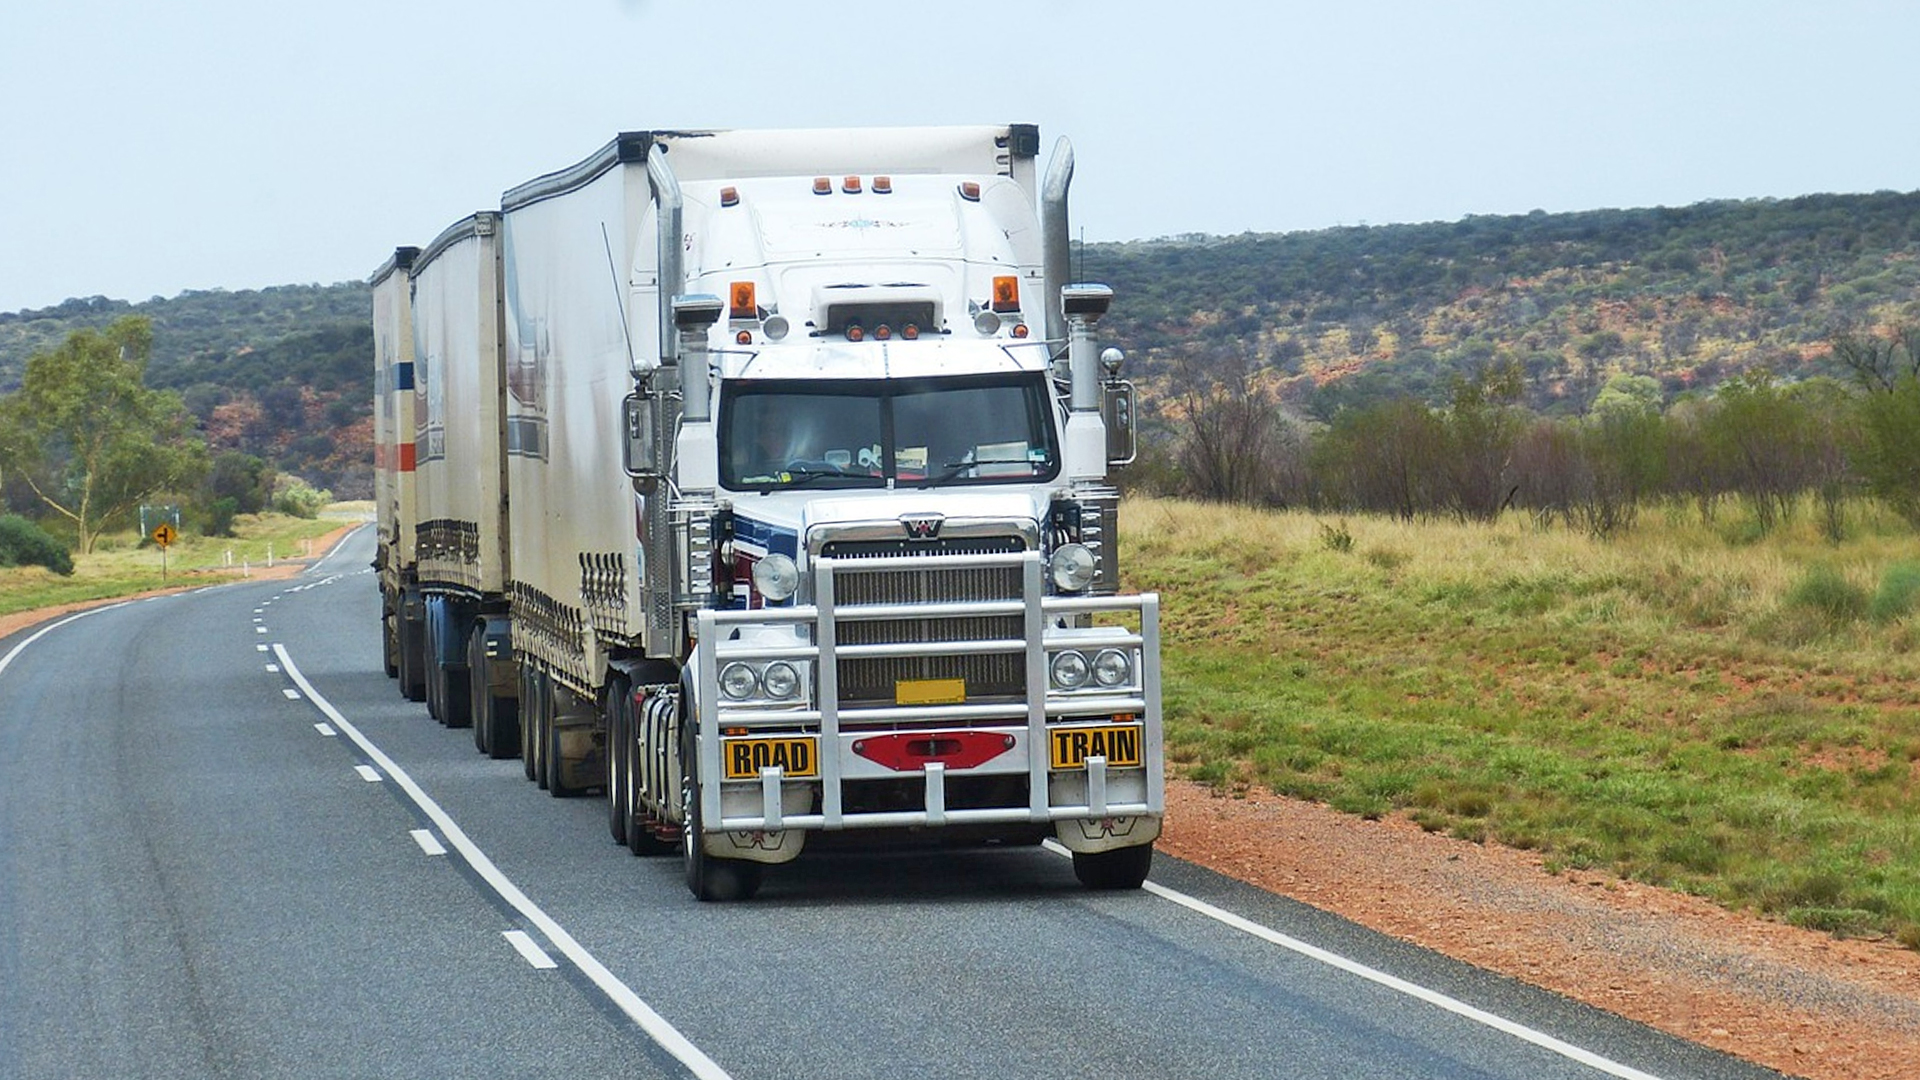 10 Safe Driving Tips for Truck Drivers